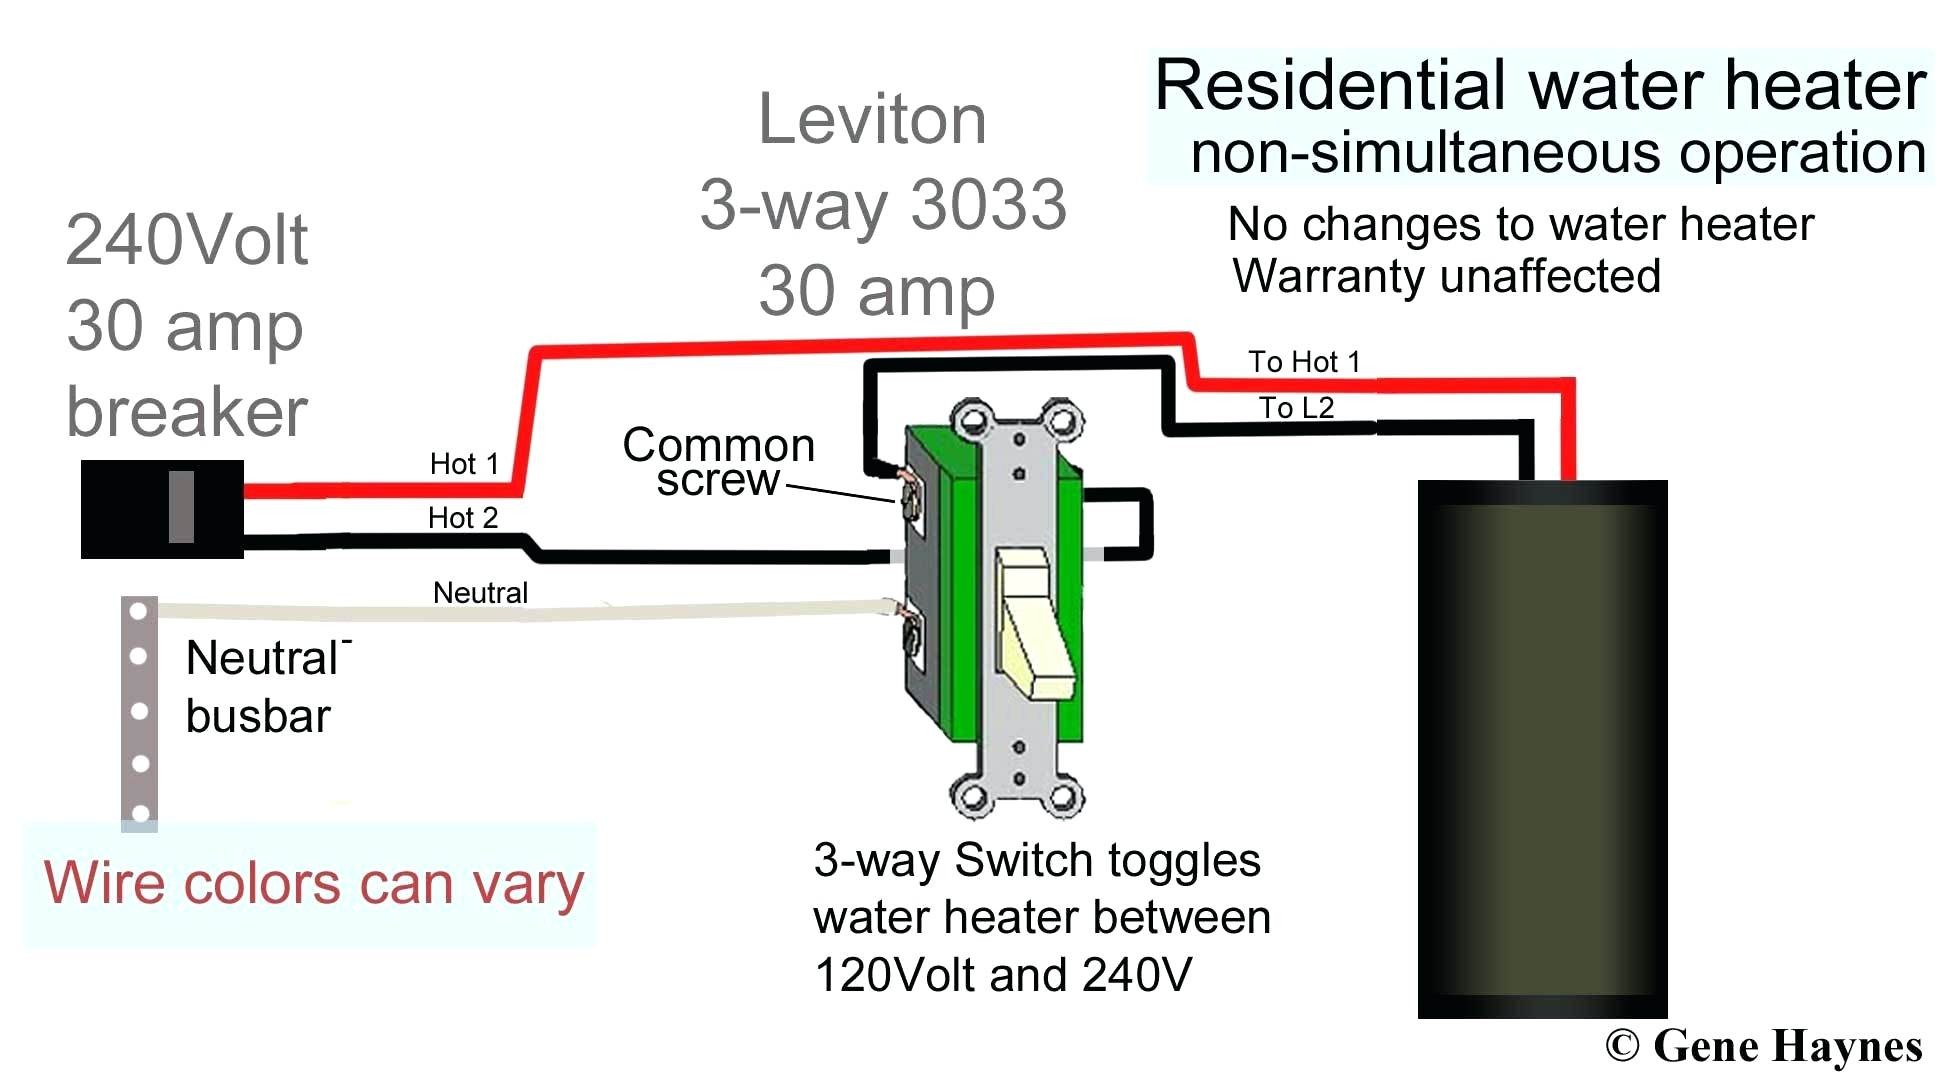 Wiring diagram for two pole thermostat free download wiring diagram free download wiring diagram double pole thermostat wiring diagram baseboard heater thermostat of wiring diagram asfbconference2016 Image collections